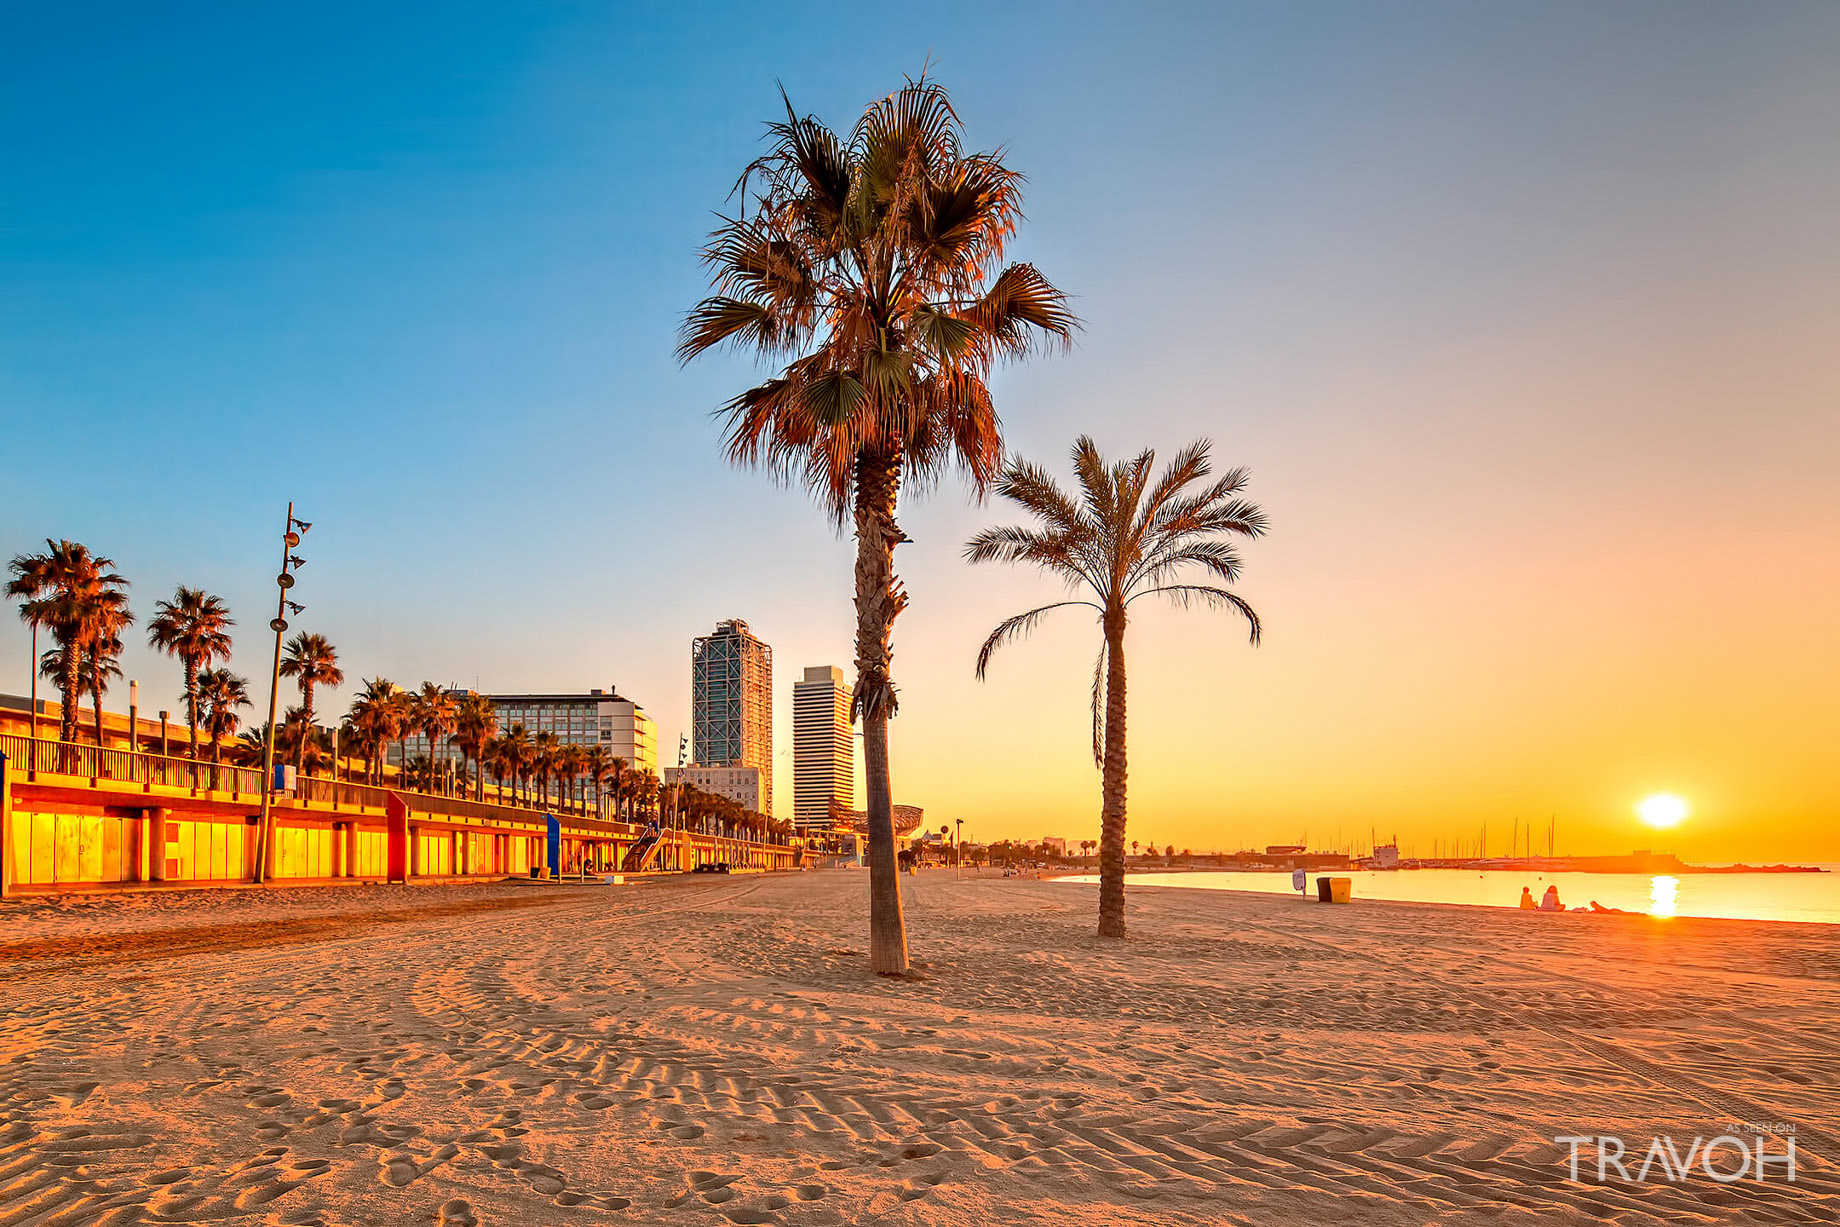 Nova Mar Bella Beach - Exploring 10 of the Top Beaches in Barcelona, Spain